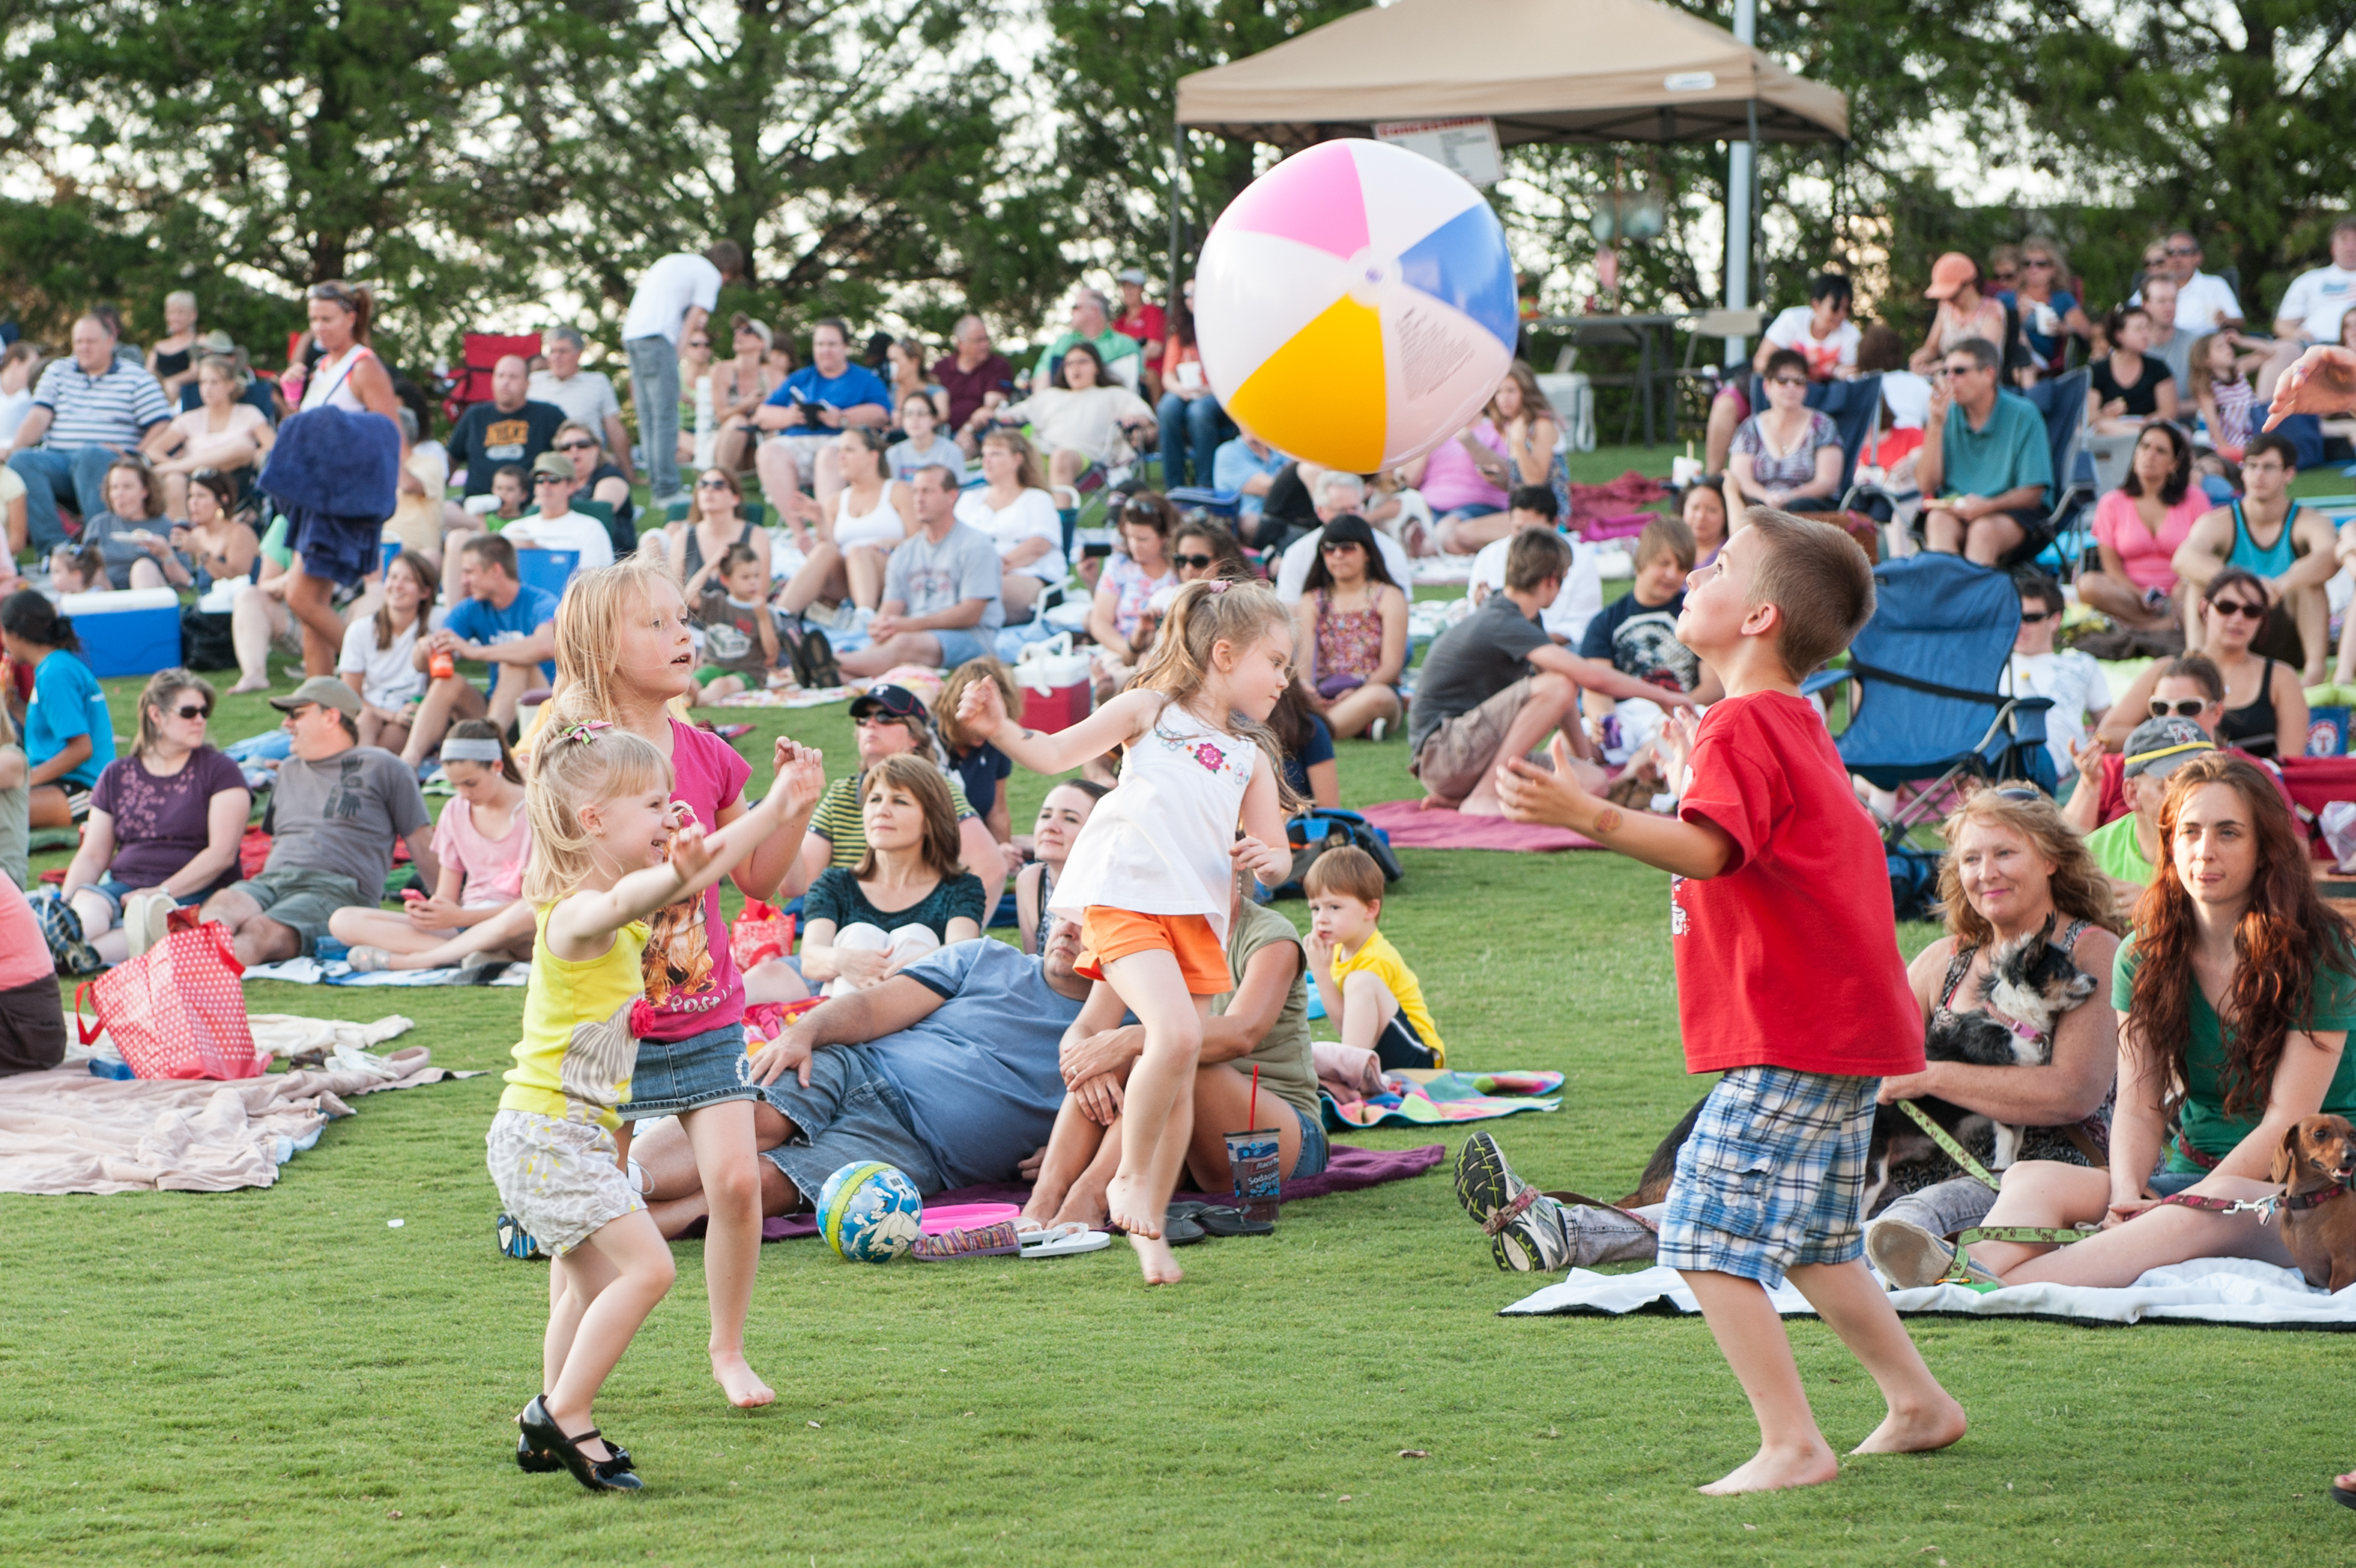 Summer Sounds Concert at Joe Farmer Recreation Center